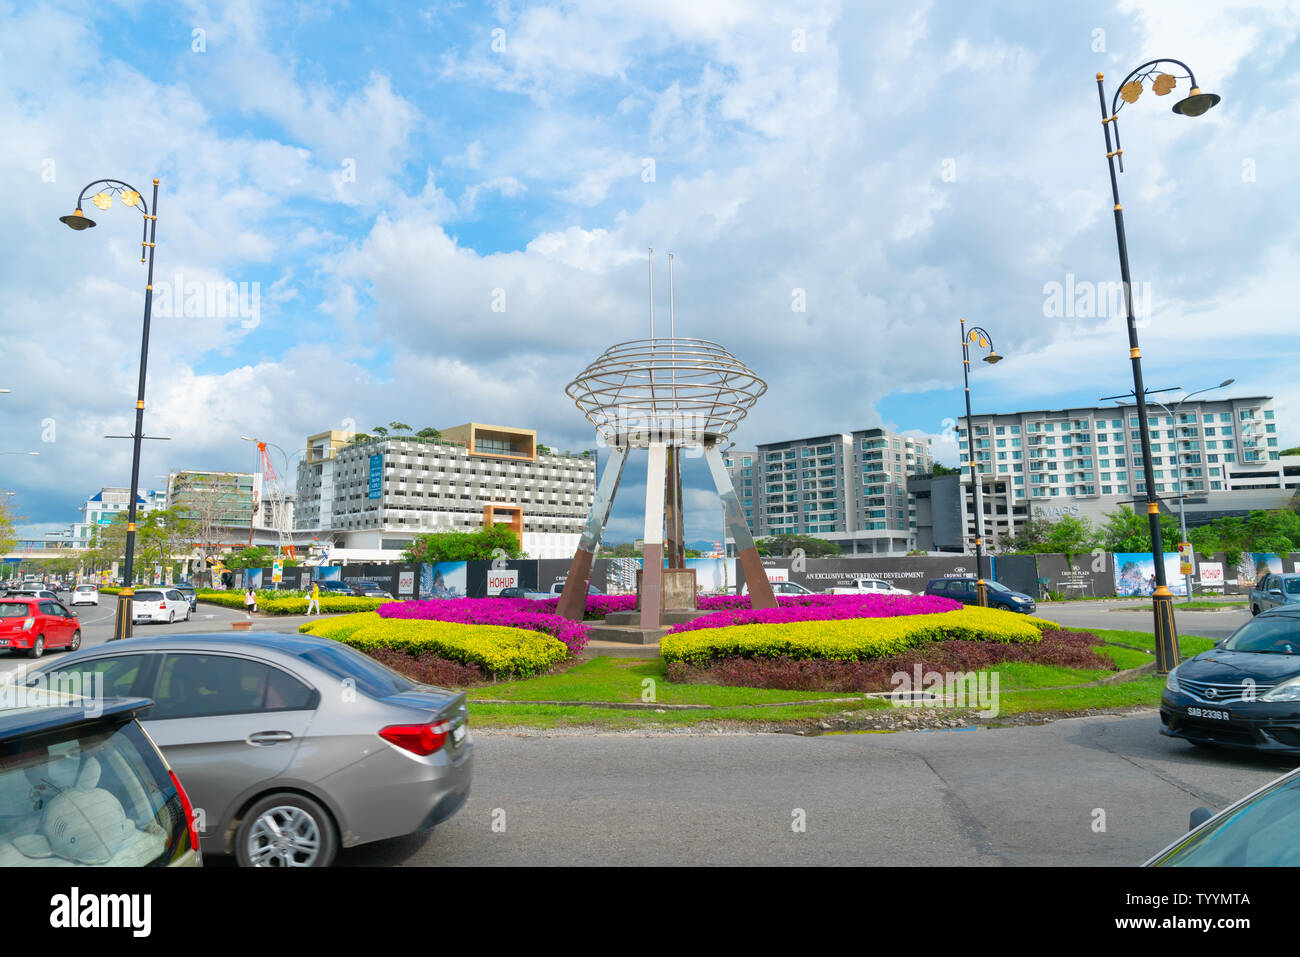 KOTA KINABALU BORNEO - JUNE 1 2019; Outstanding stainless steel public art, sculpture on vehicle roundabout in Kota Kinabalu with colorful gardens and - Stock Image